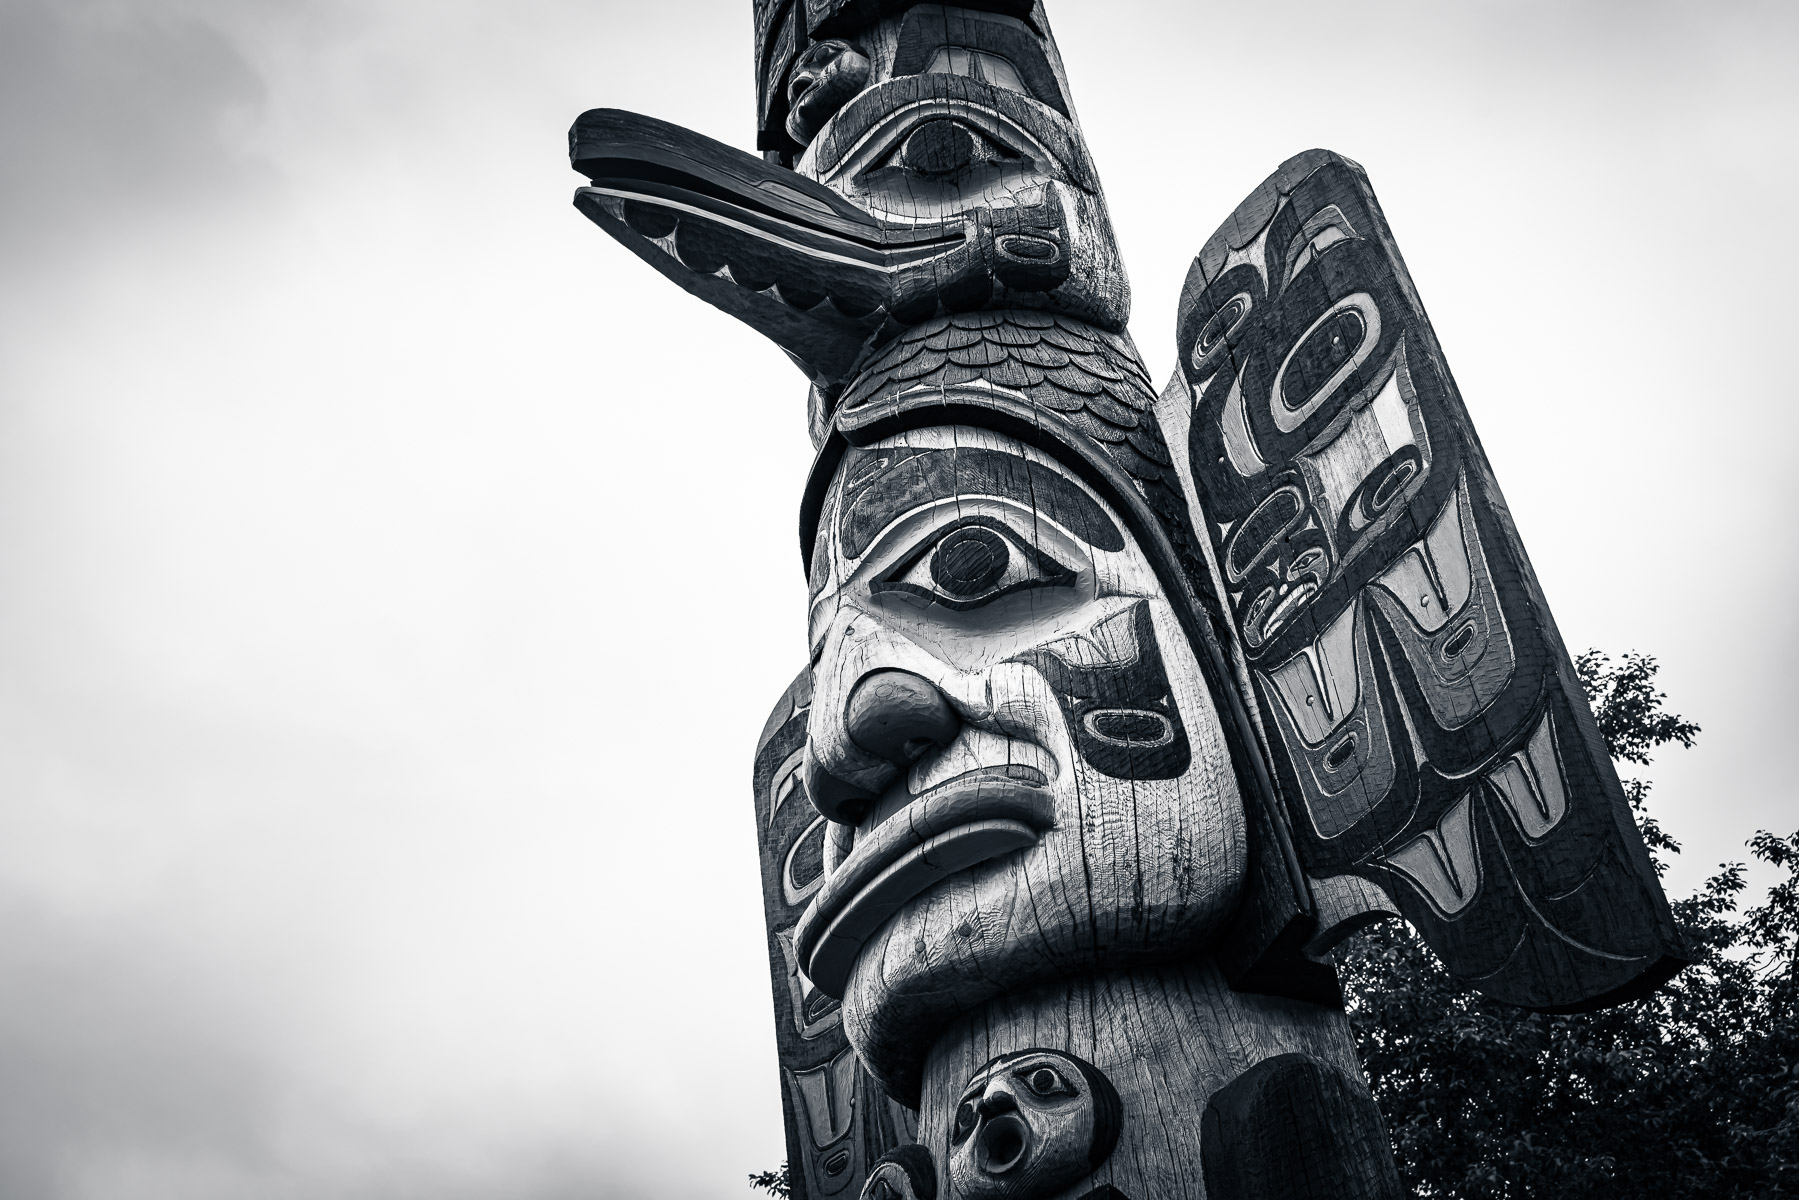 Detail of a totem pole spotted in Ketchikan, Alaska.